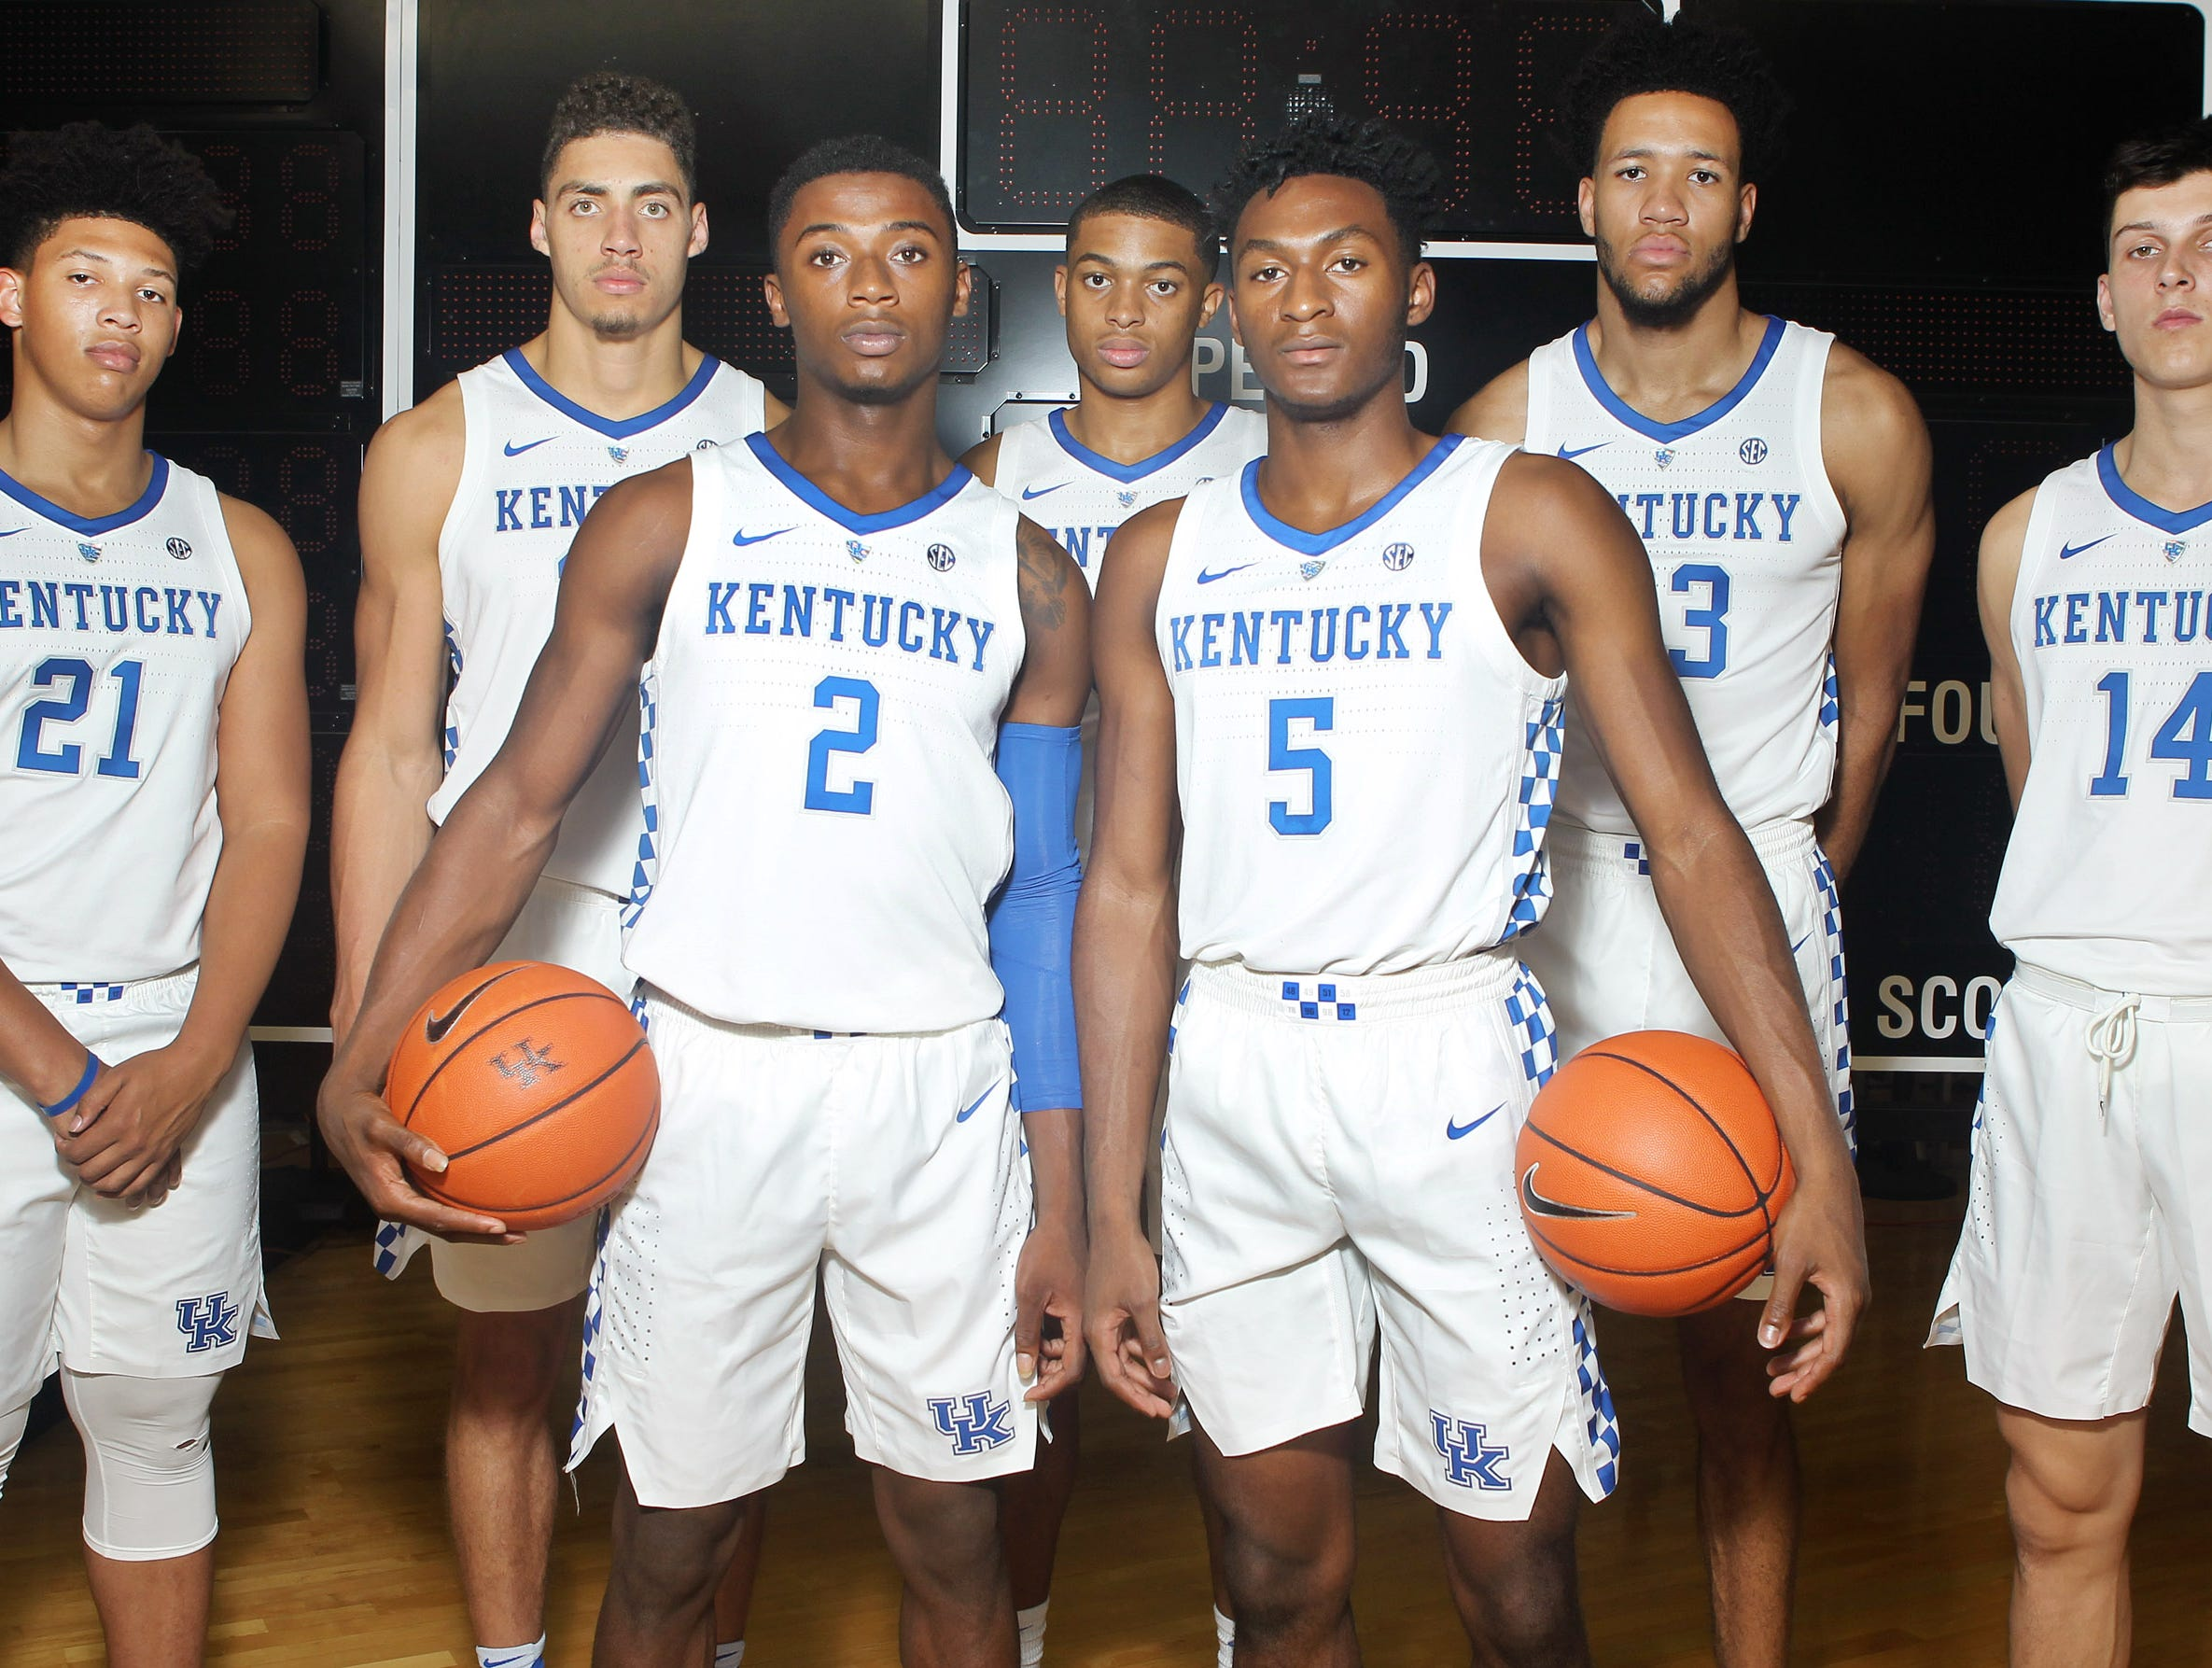 Kentucky newcomers (from left) Zan Payne (21), Reid Travis (22), Ashton Hagans (2), Keldon Johnson (3), Immanuel Quickley (5), EJ Montgomery (23) and Tyler Herro (14) pose during the teams picture day in Memorial Coliseum on campus. Sep. 20, 2018